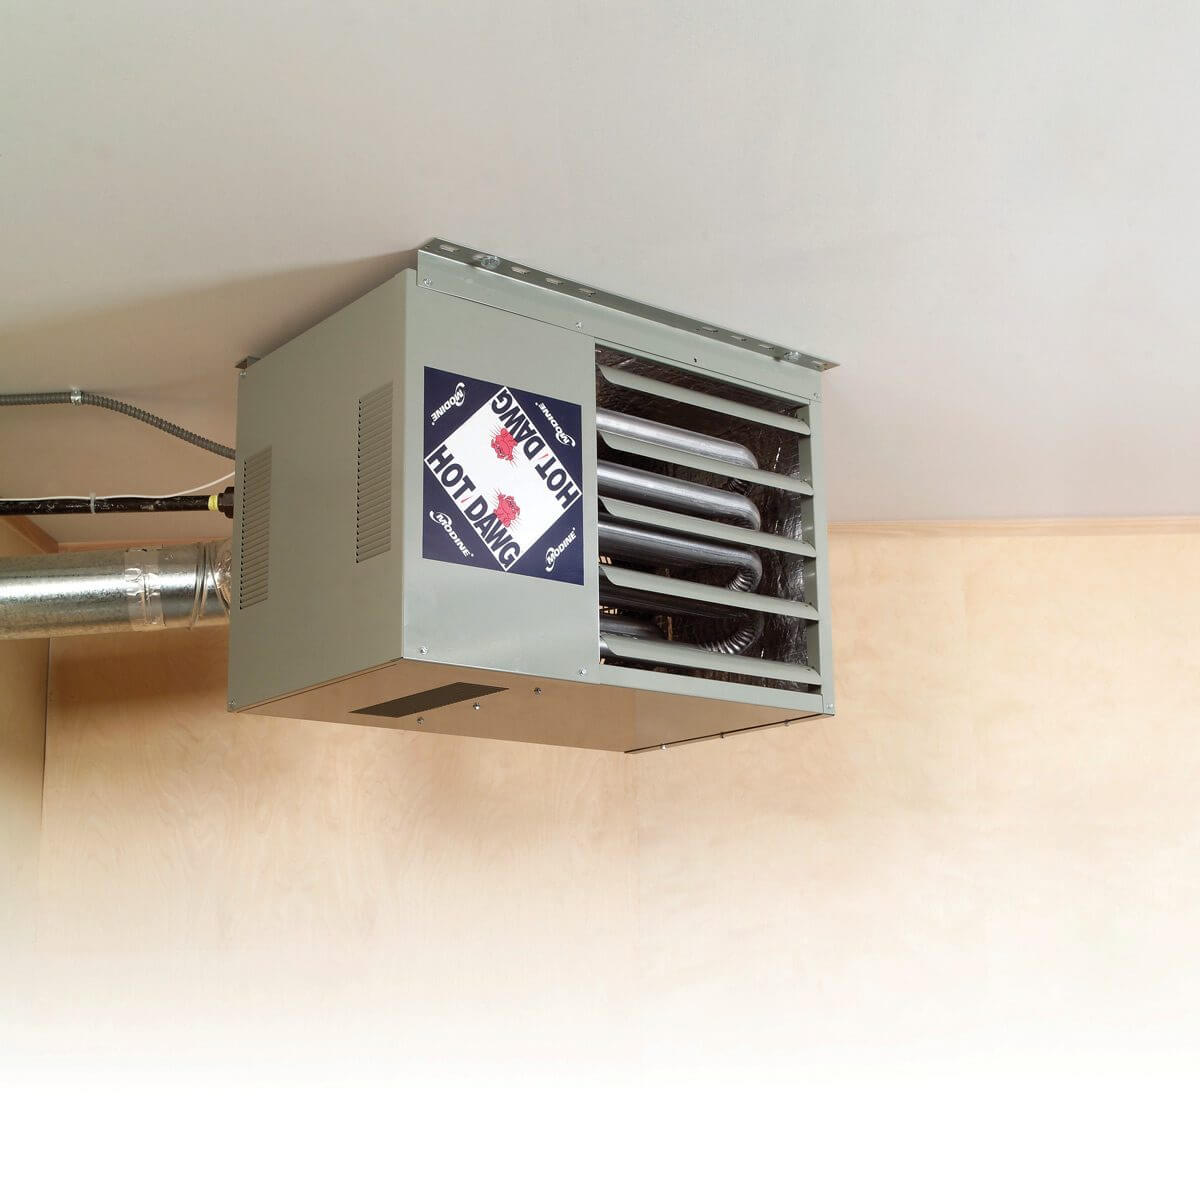 HOW TO HEAT A GARAGE WITH INSTALL FORCED AIR HEATER